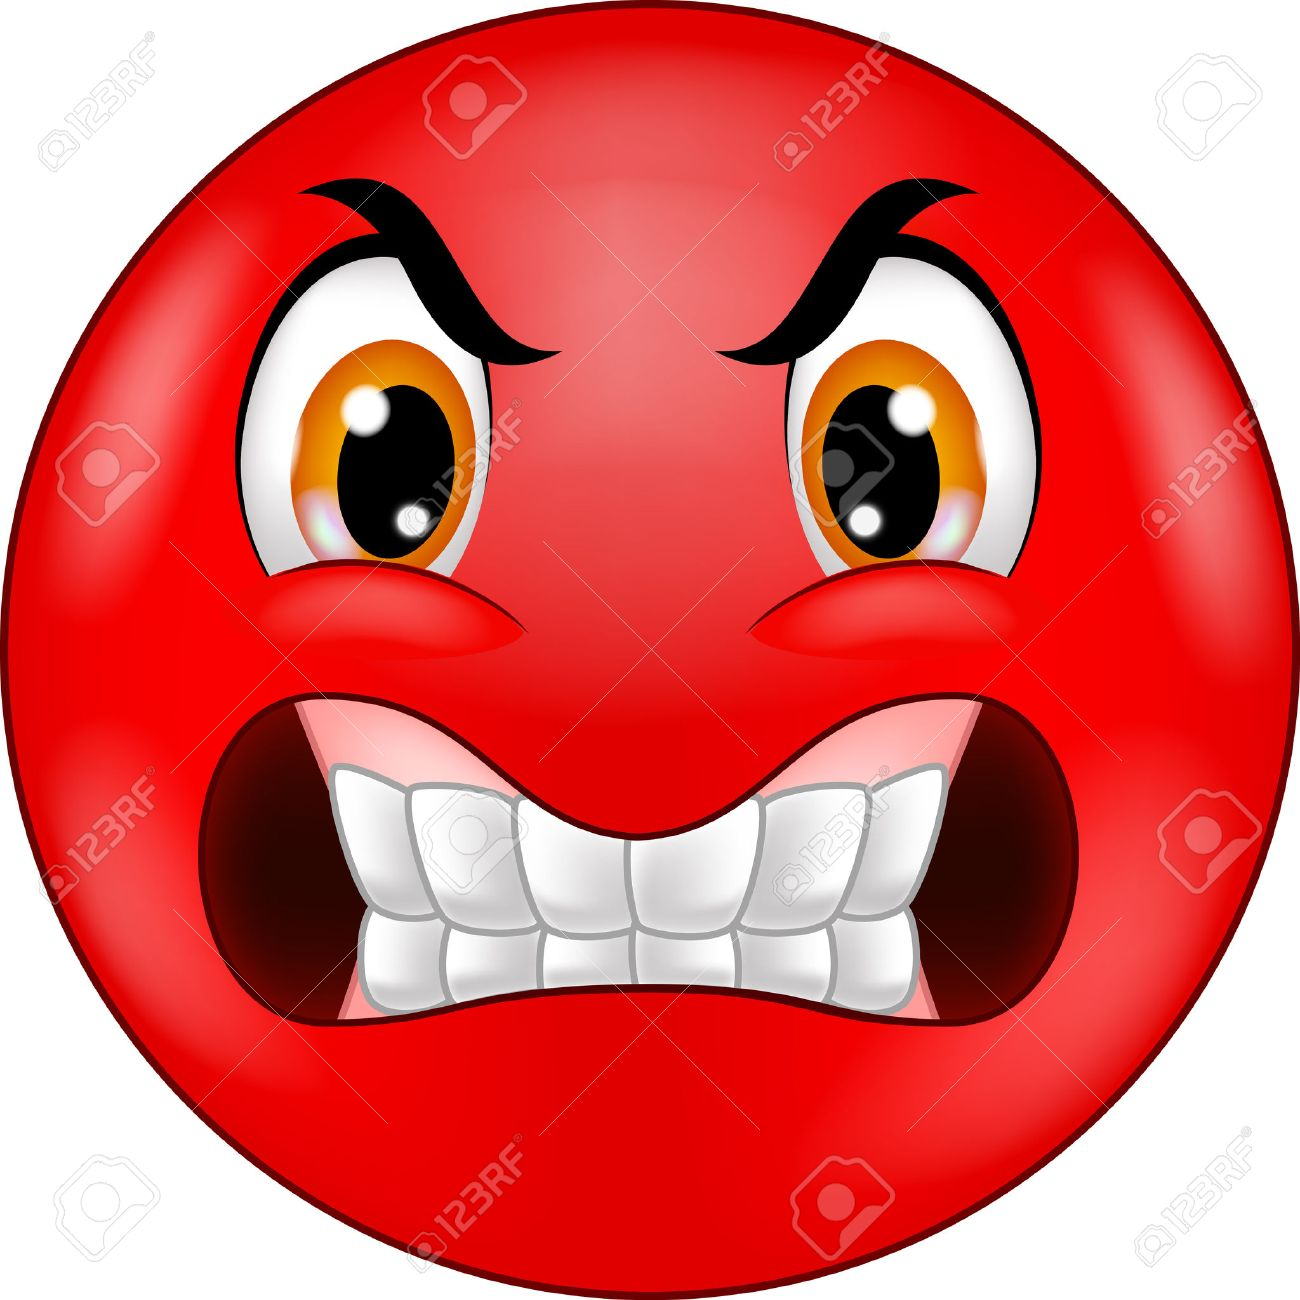 Angry Face Clipart At Getdrawings Free For Personal Use Angry